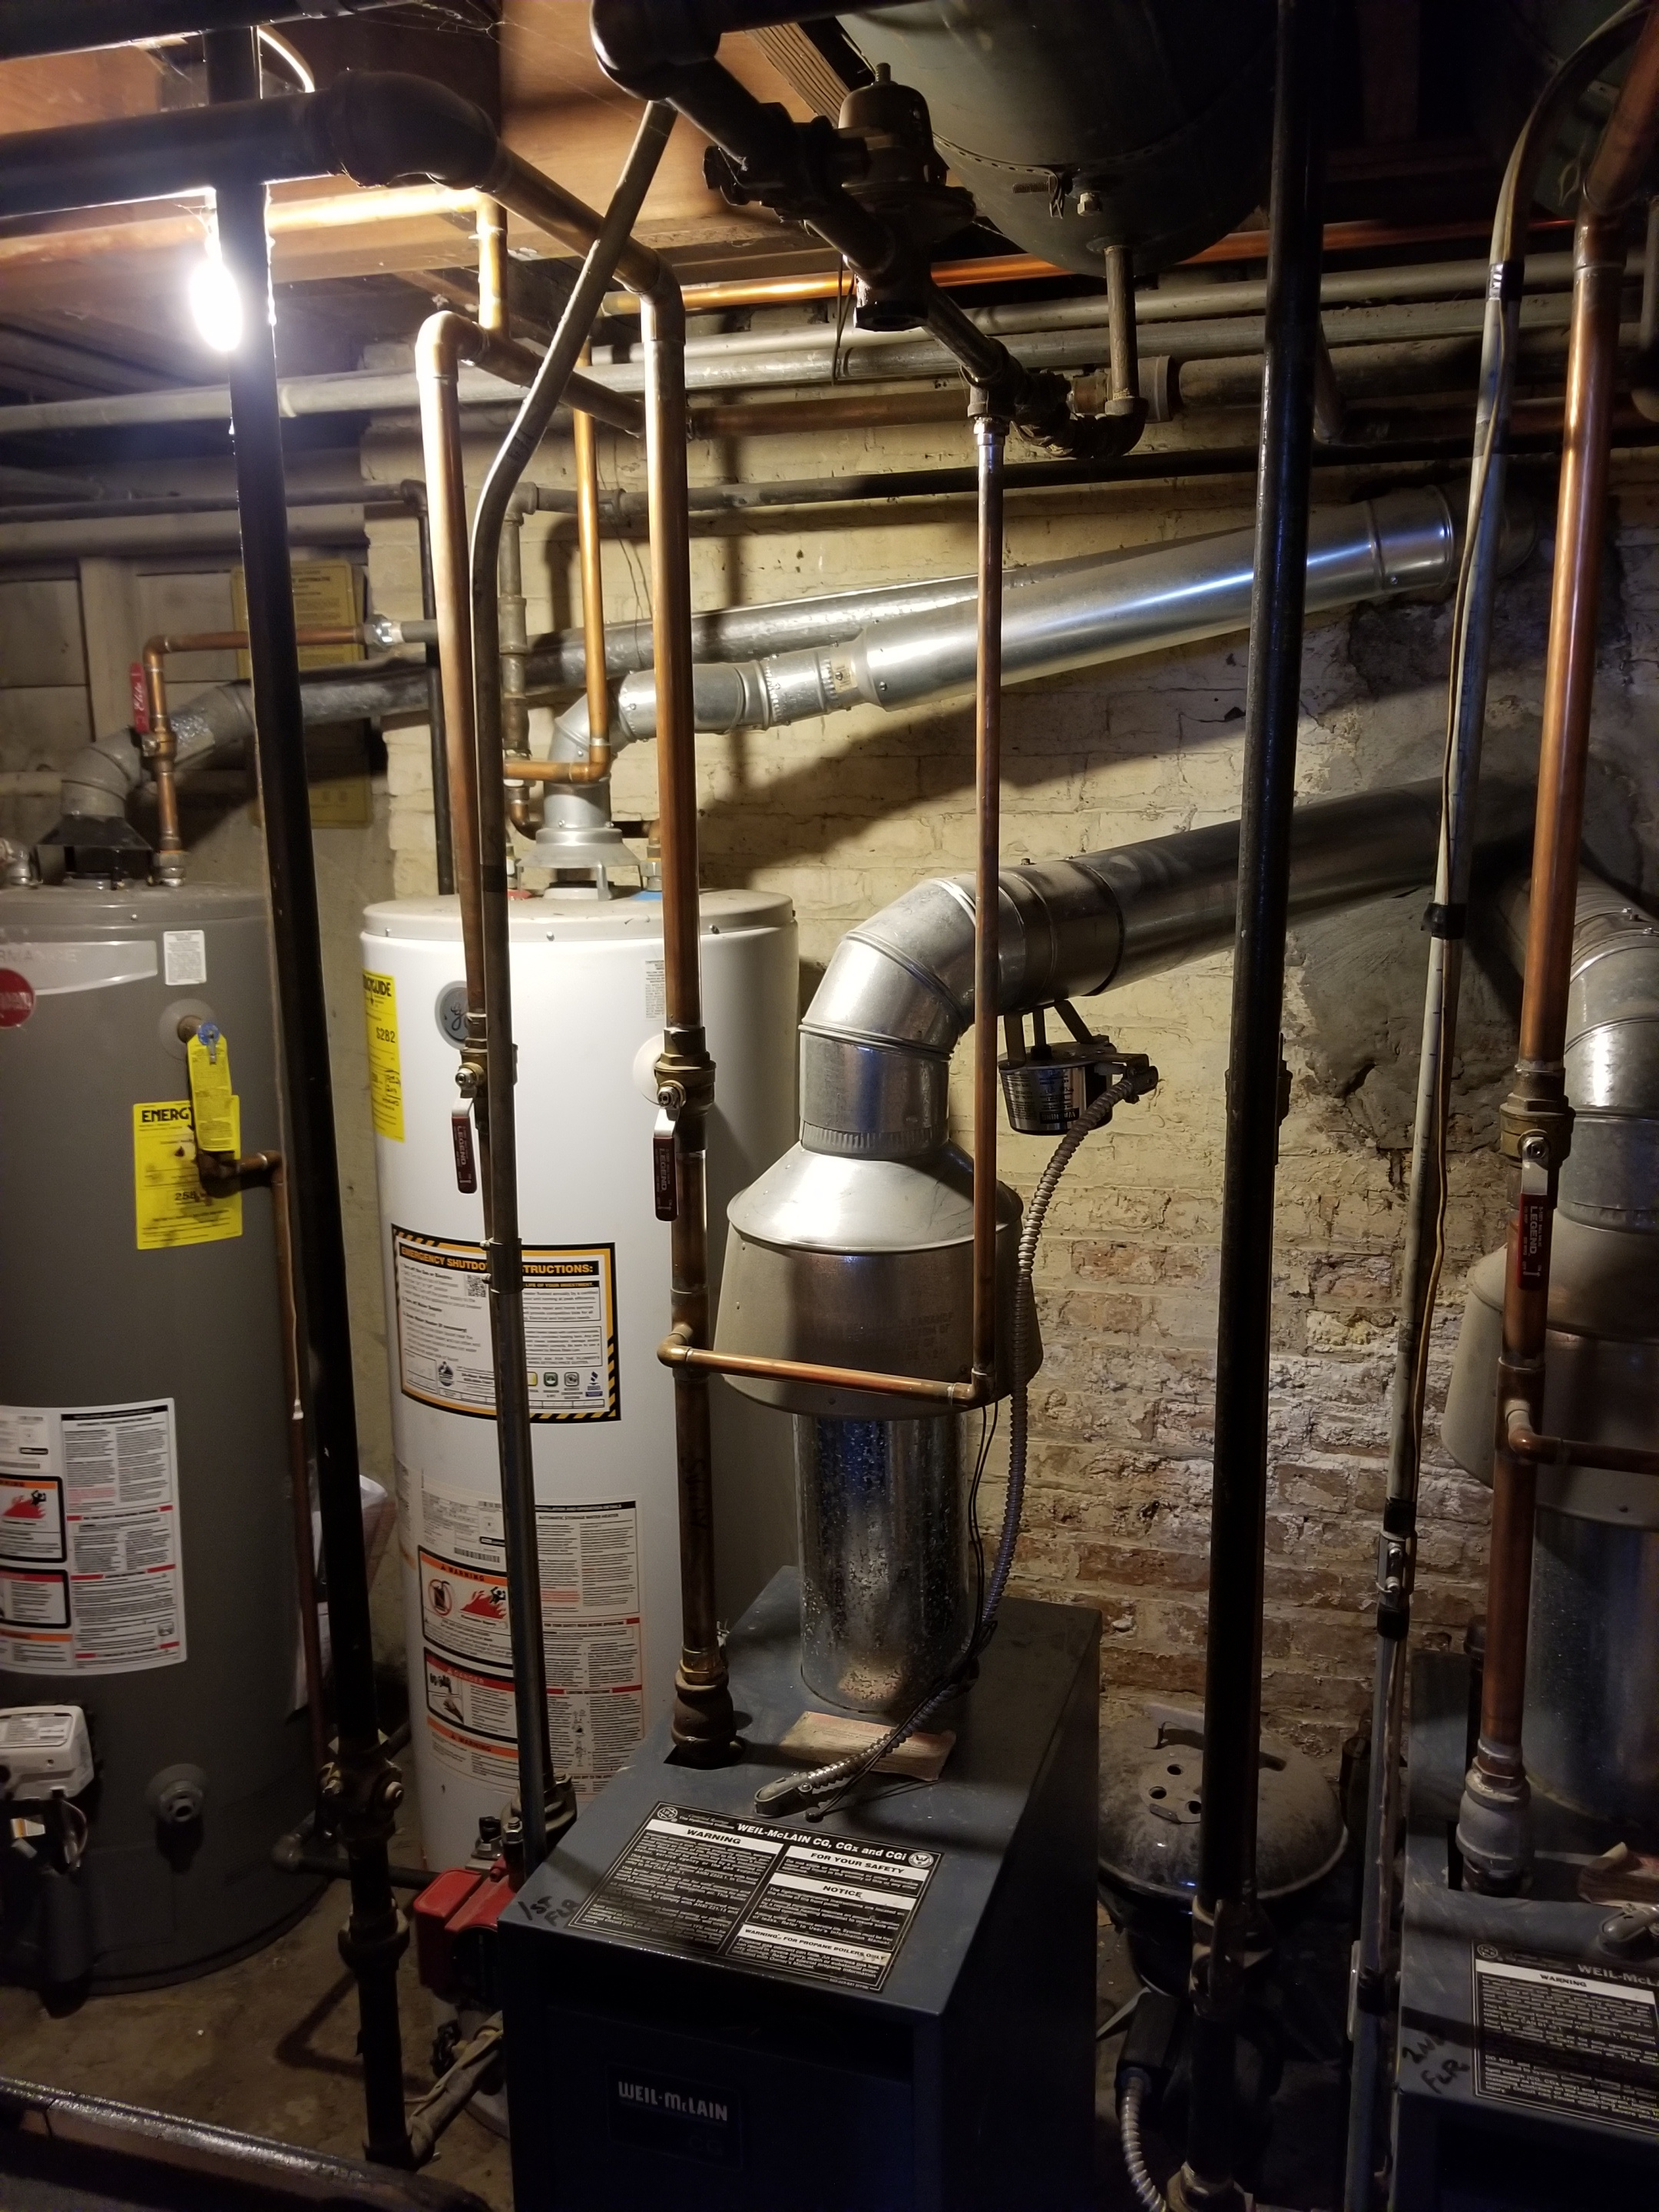 Repaired the Weil-McLain boiler and made adjustments to improve the overall efficiency and life expectancy of the equipment